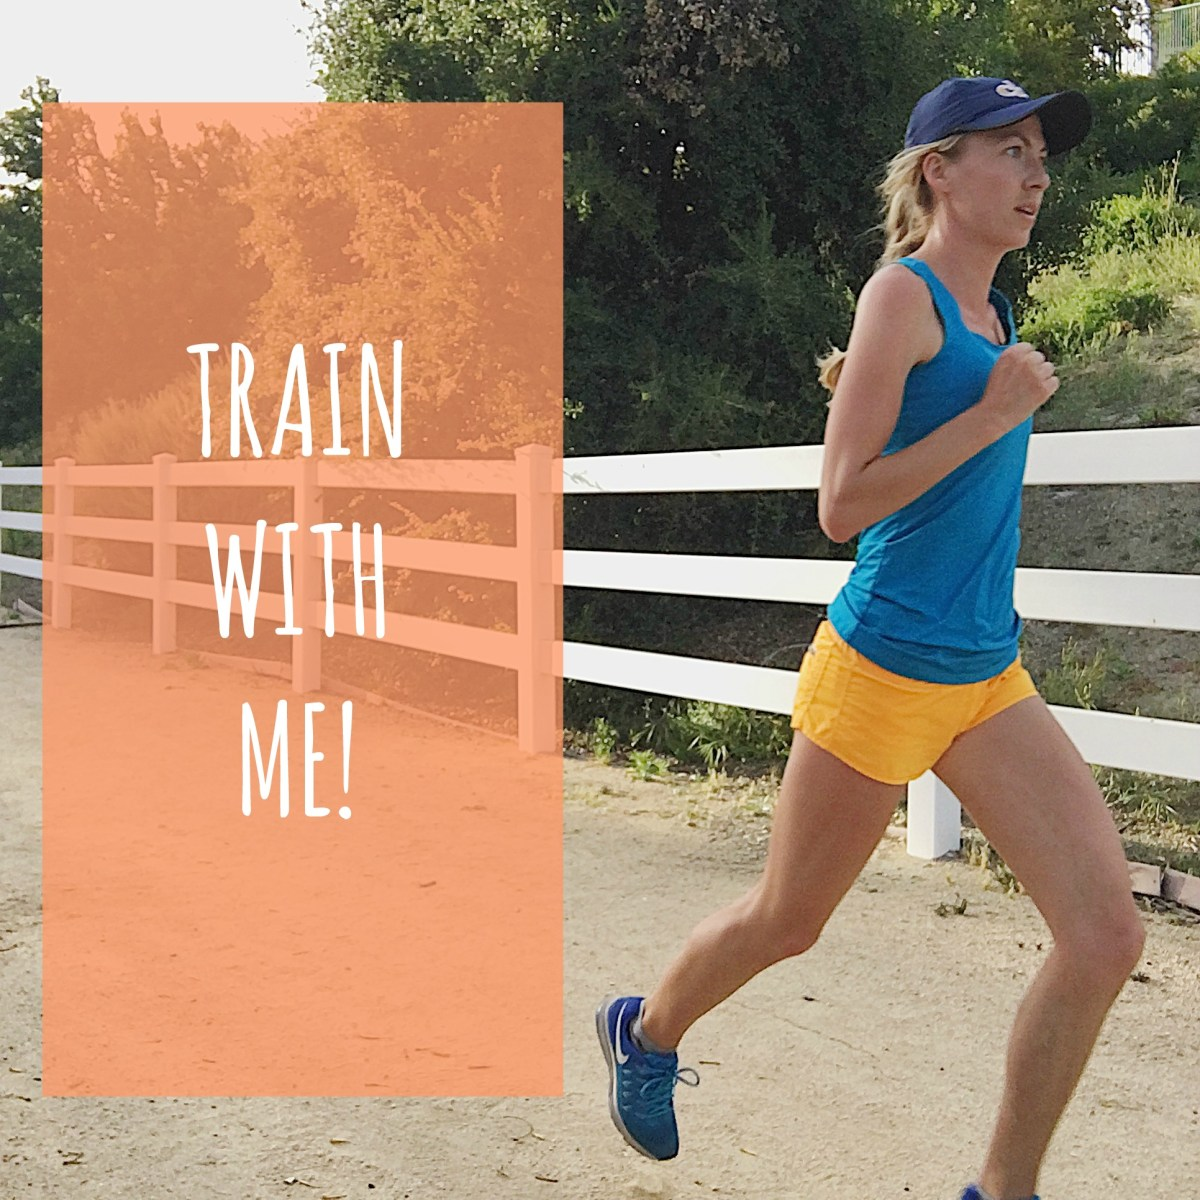 TRAIN WITH ME!